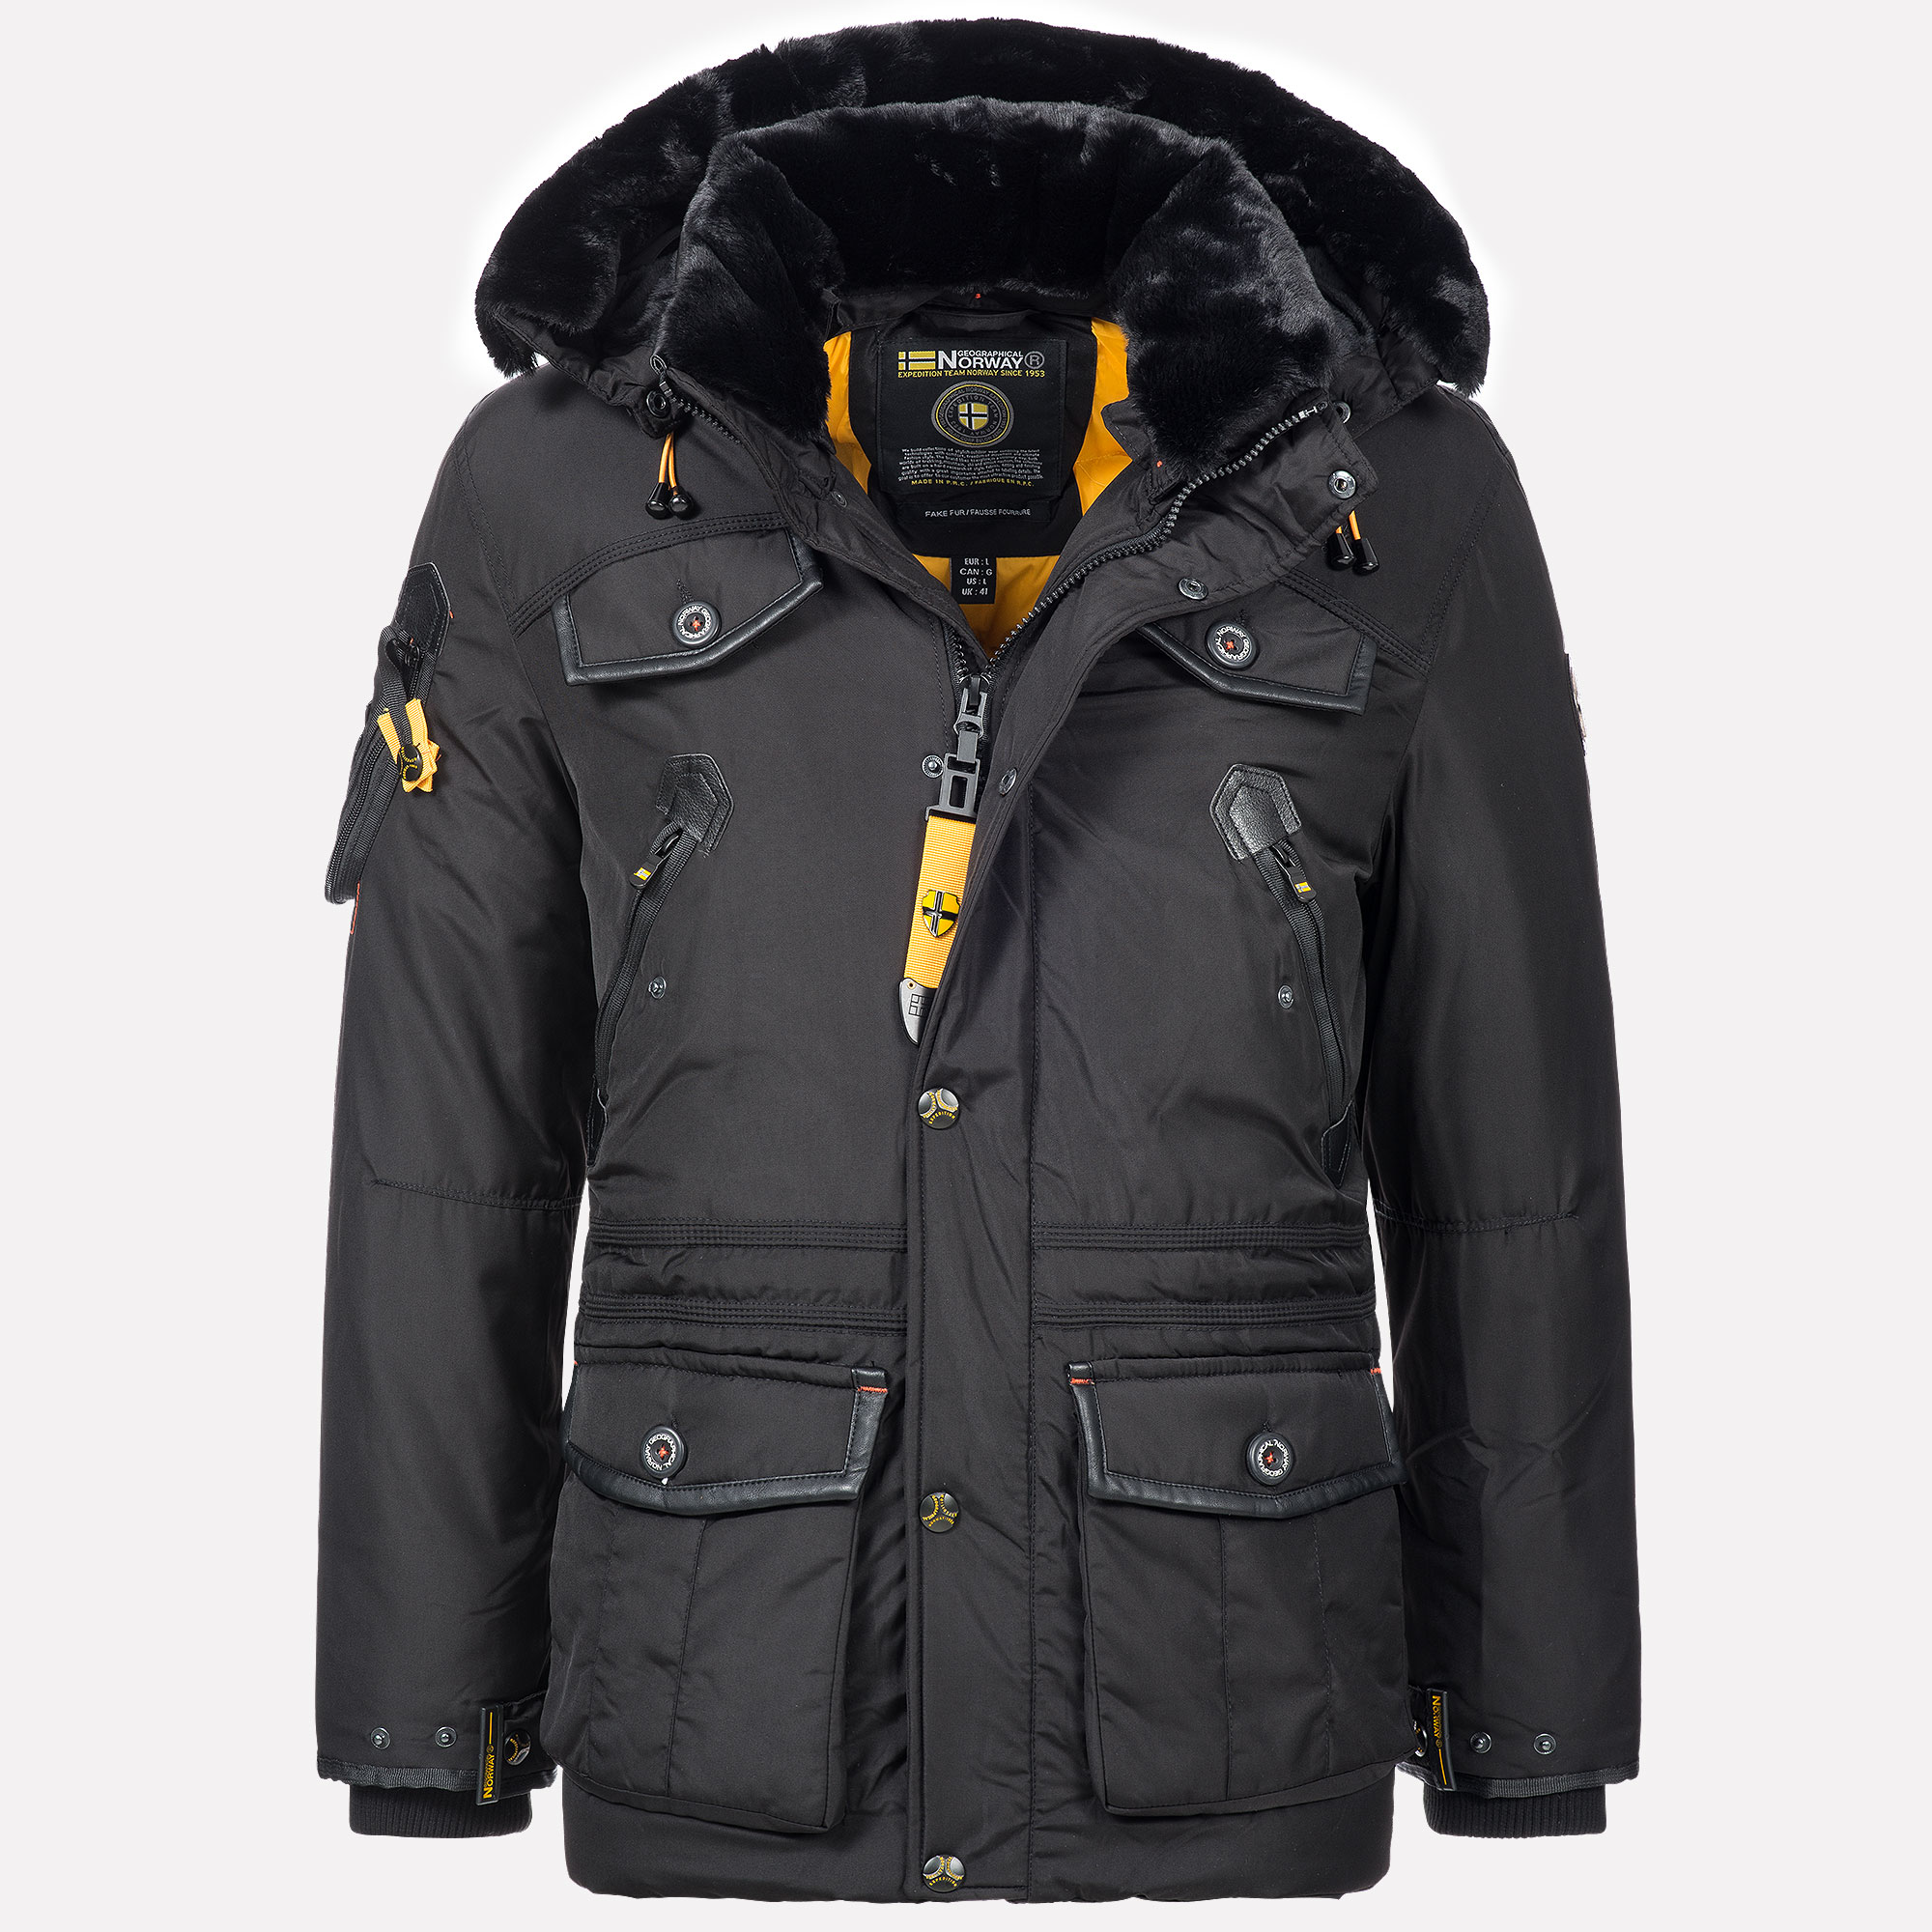 Ebay Gutschein Jacken Details Zu Geographical Norway Herren Luxus Parka Outdoor Sehr Warm Winter Jacke Ski Mantel